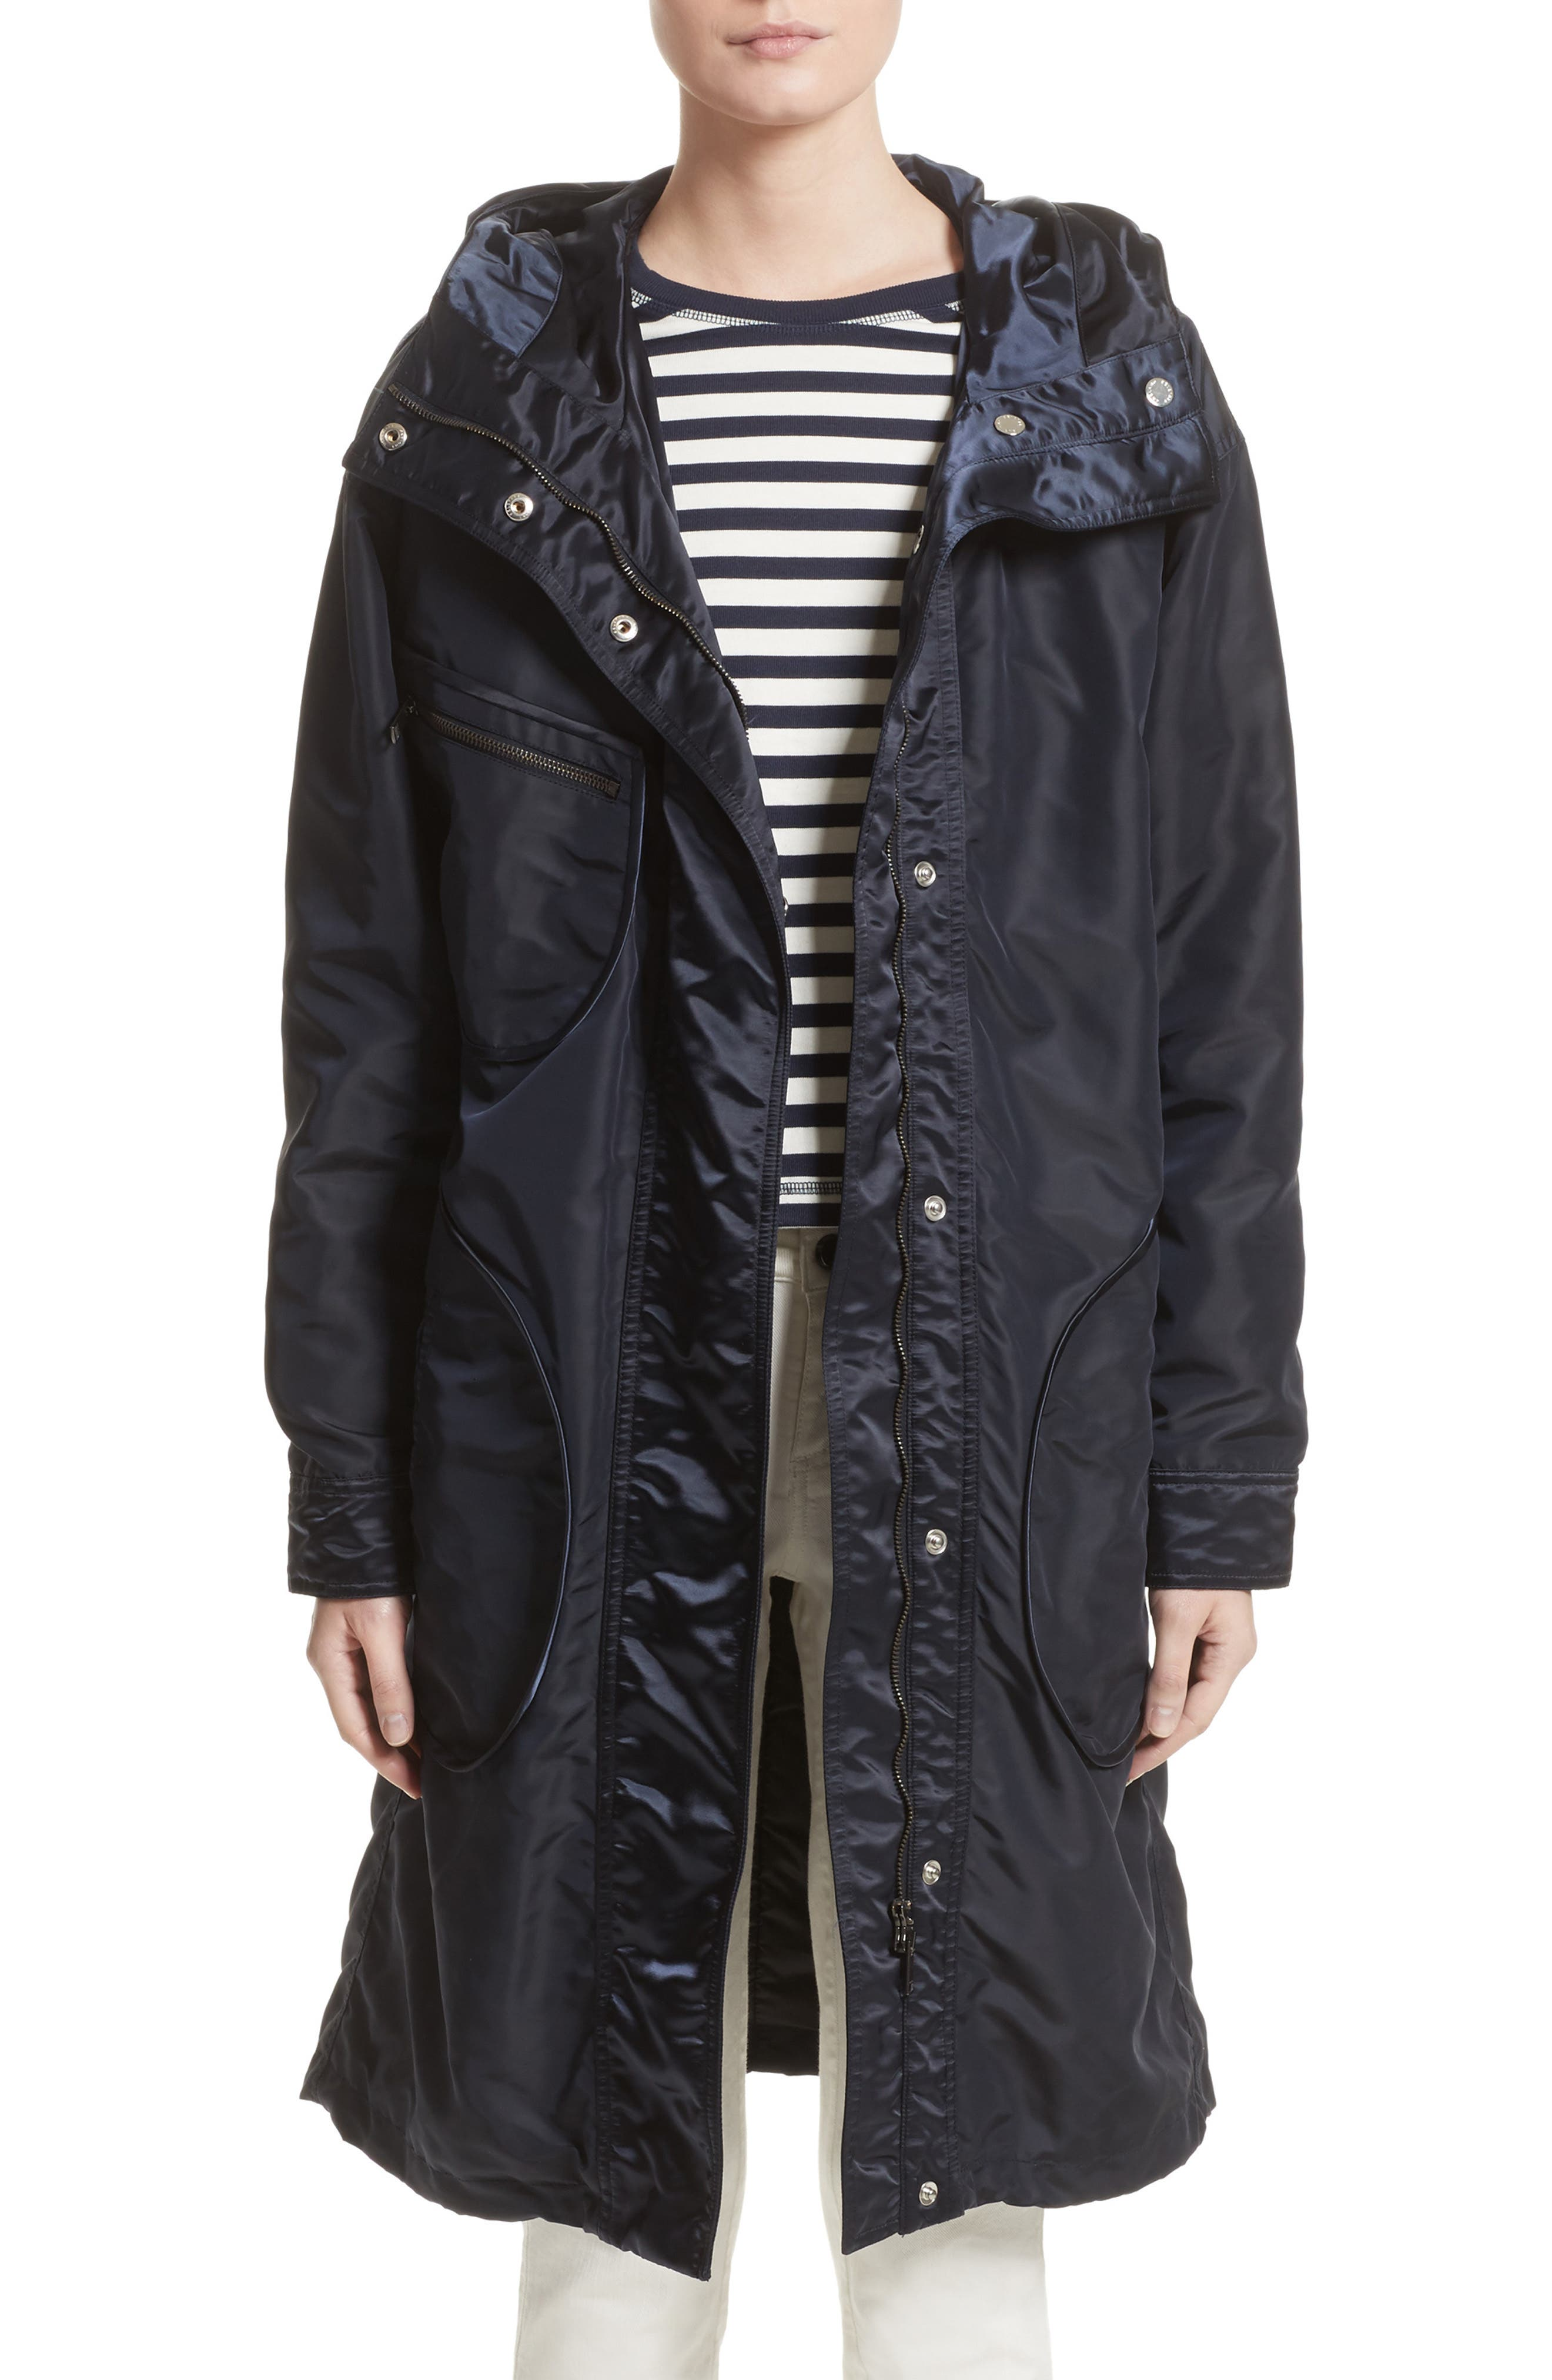 Belstaff Claredon Hooded Raincoat